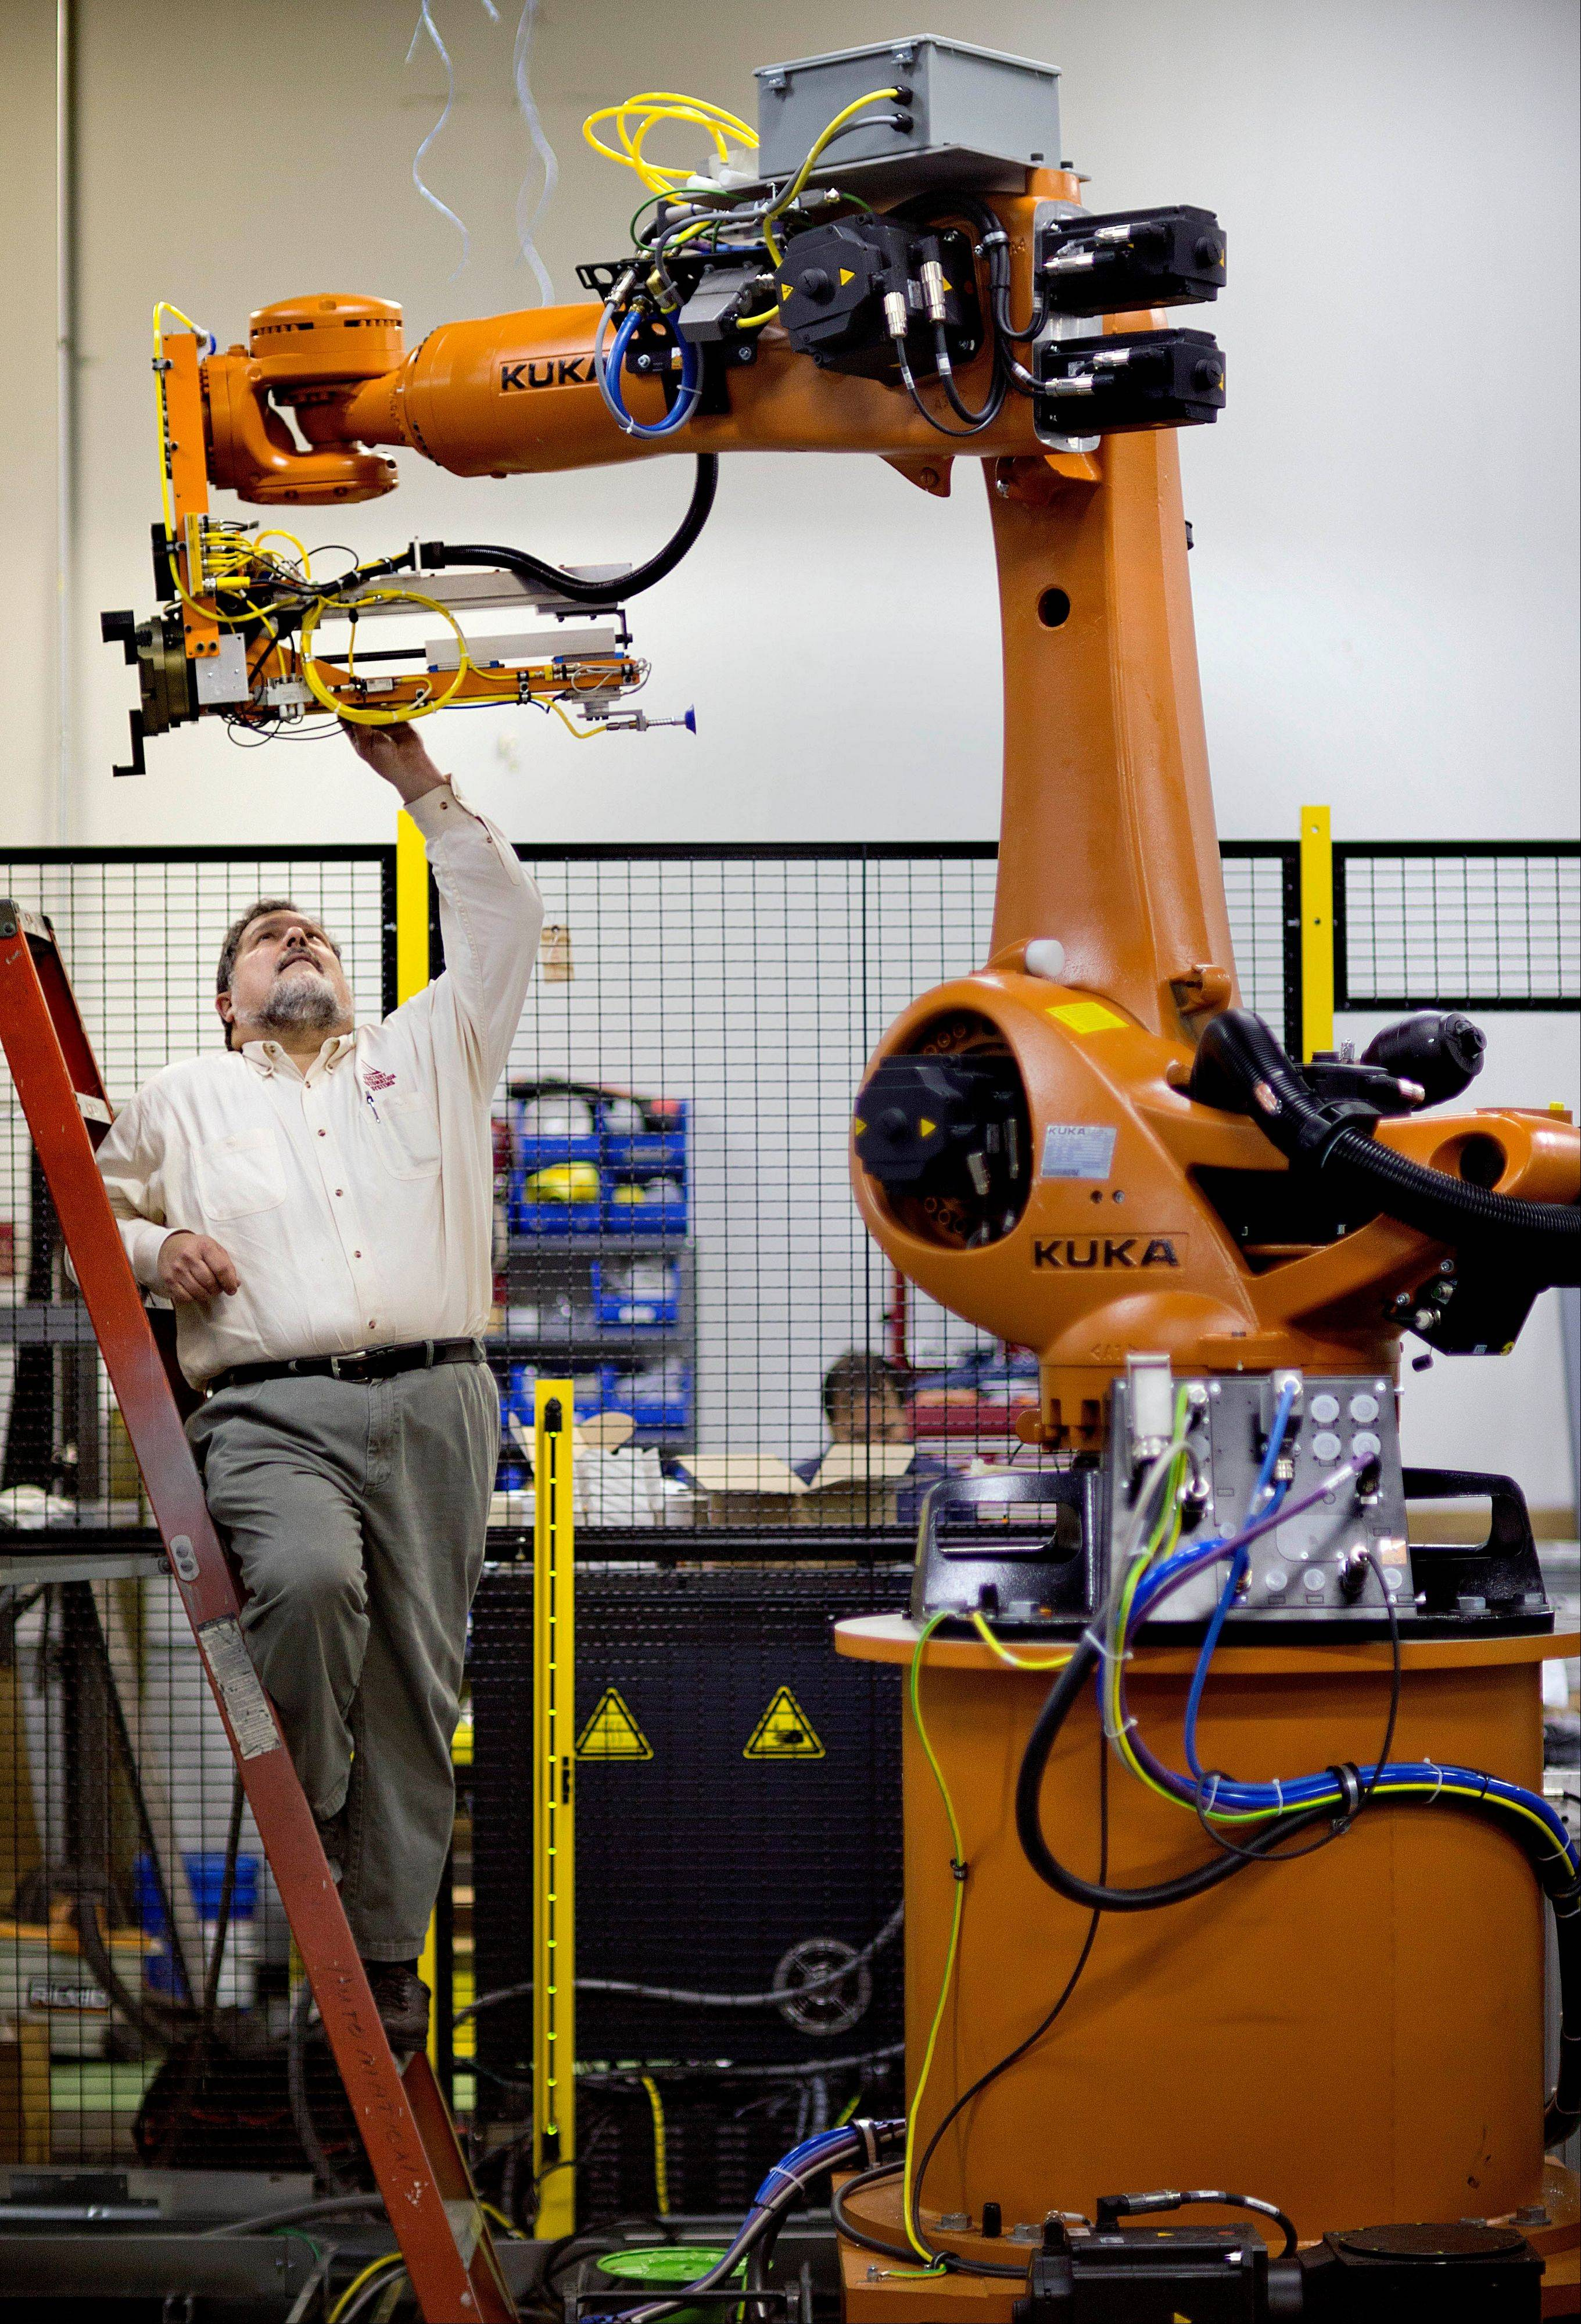 Rosser Pryor, Co-owner and President of Factory Automation Systems, examines a new high-performance industrial robot at the company's Atlanta facility. Pryor, who cut 40 of 100 workers since the recession, says while the company is making more money now and could hire ten people, it is holding back in favor of investing in automation and software.